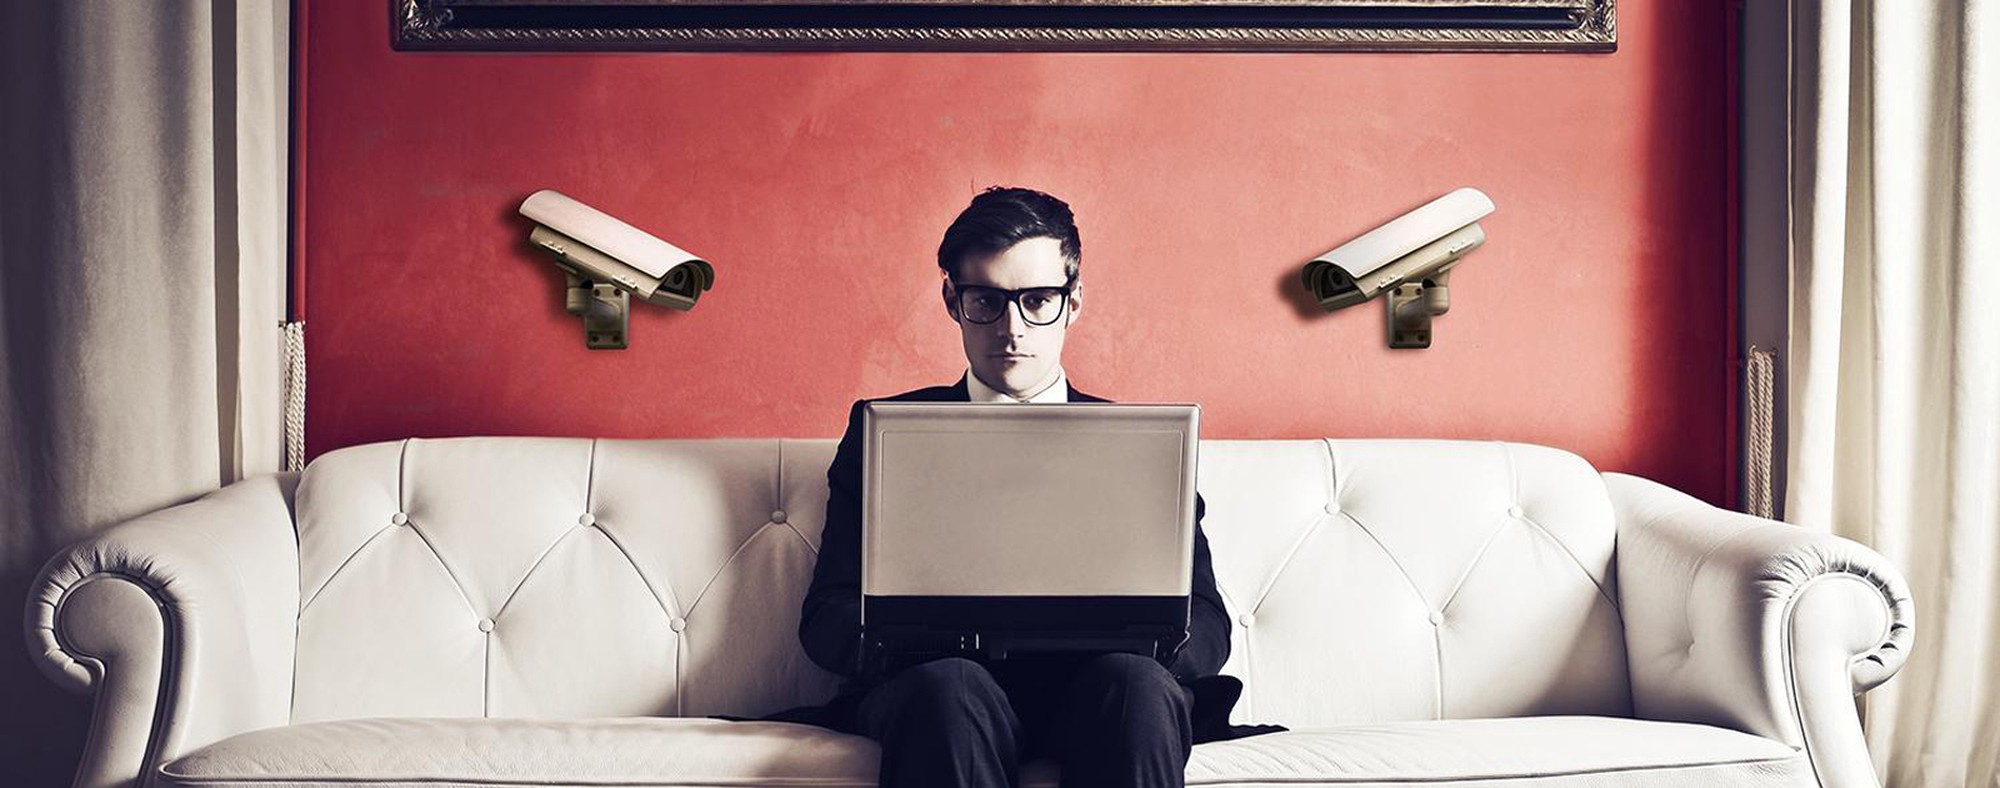 /talking-about-security-of-communication-and-privacy-is-never-enough-especially-when-political-c0486fdda57 feature image